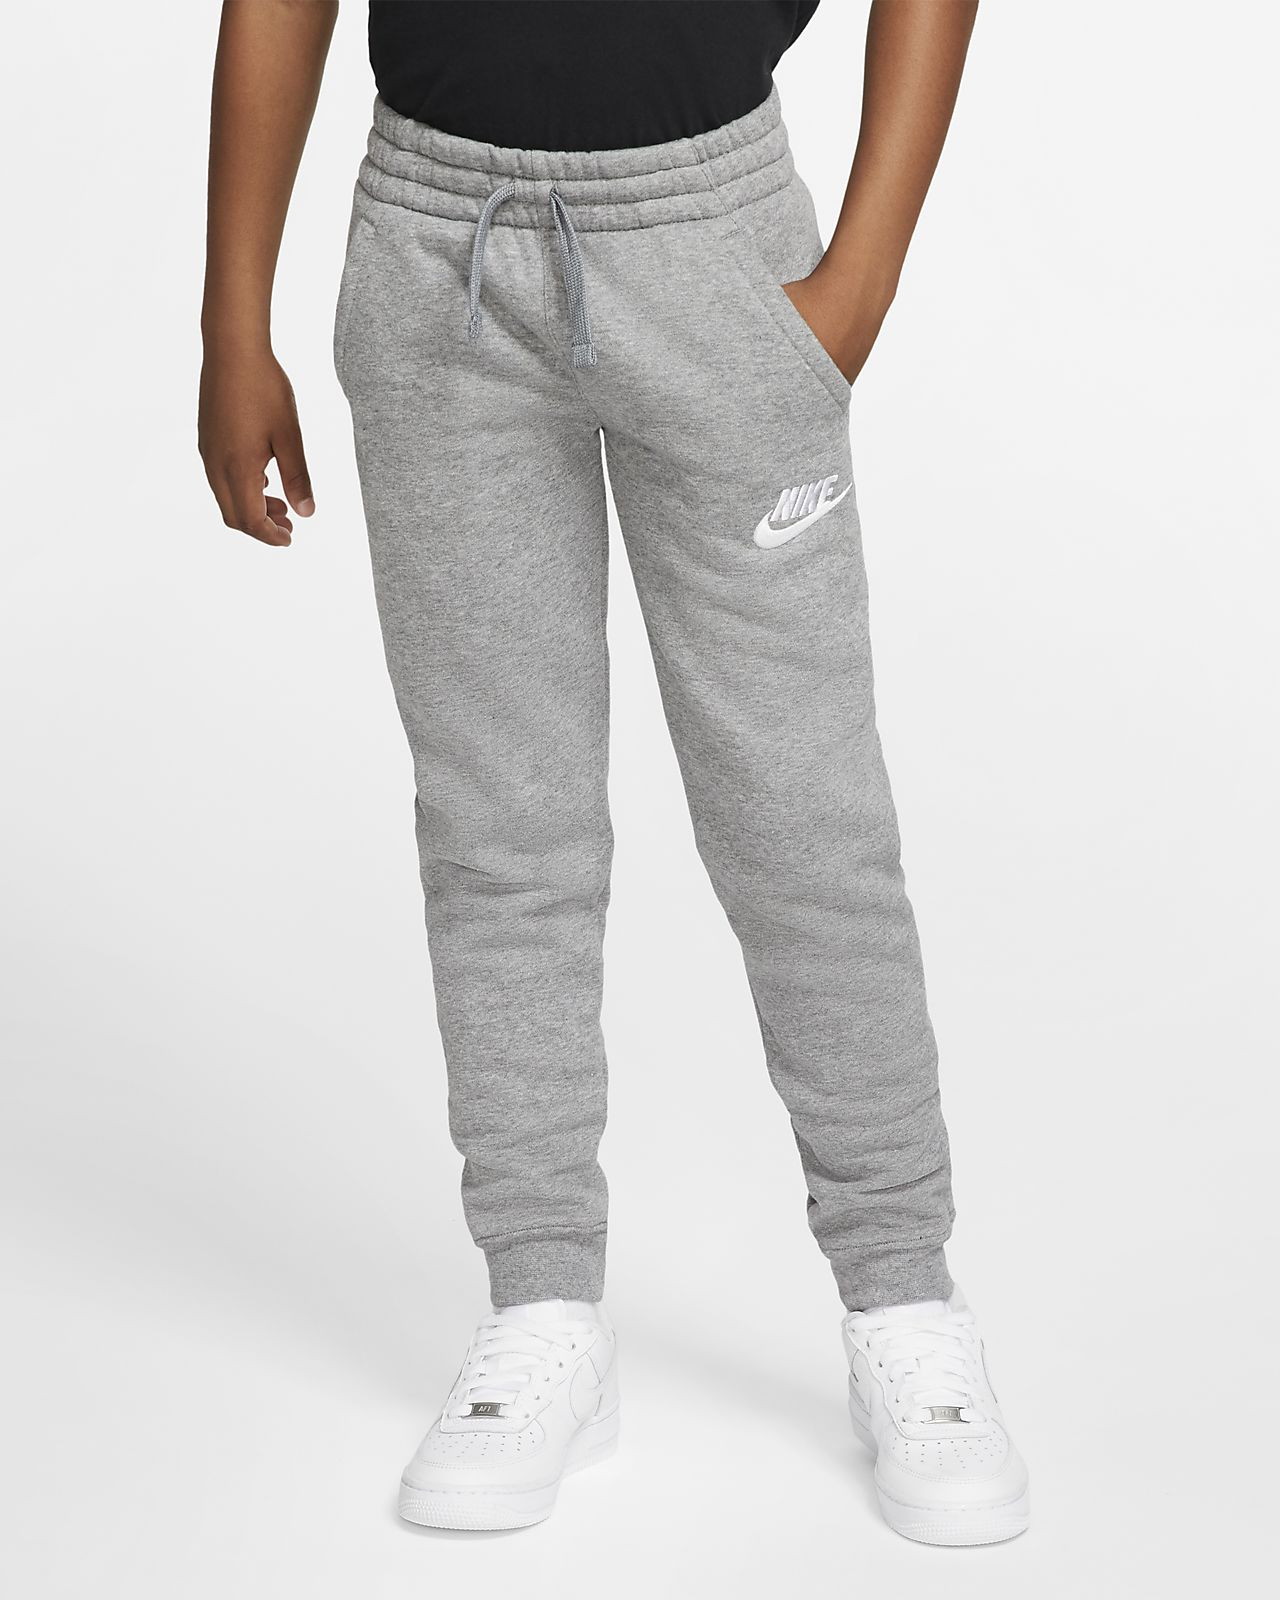 Nike Sportswear Club Fleece Older Kids\u0027 Trousers